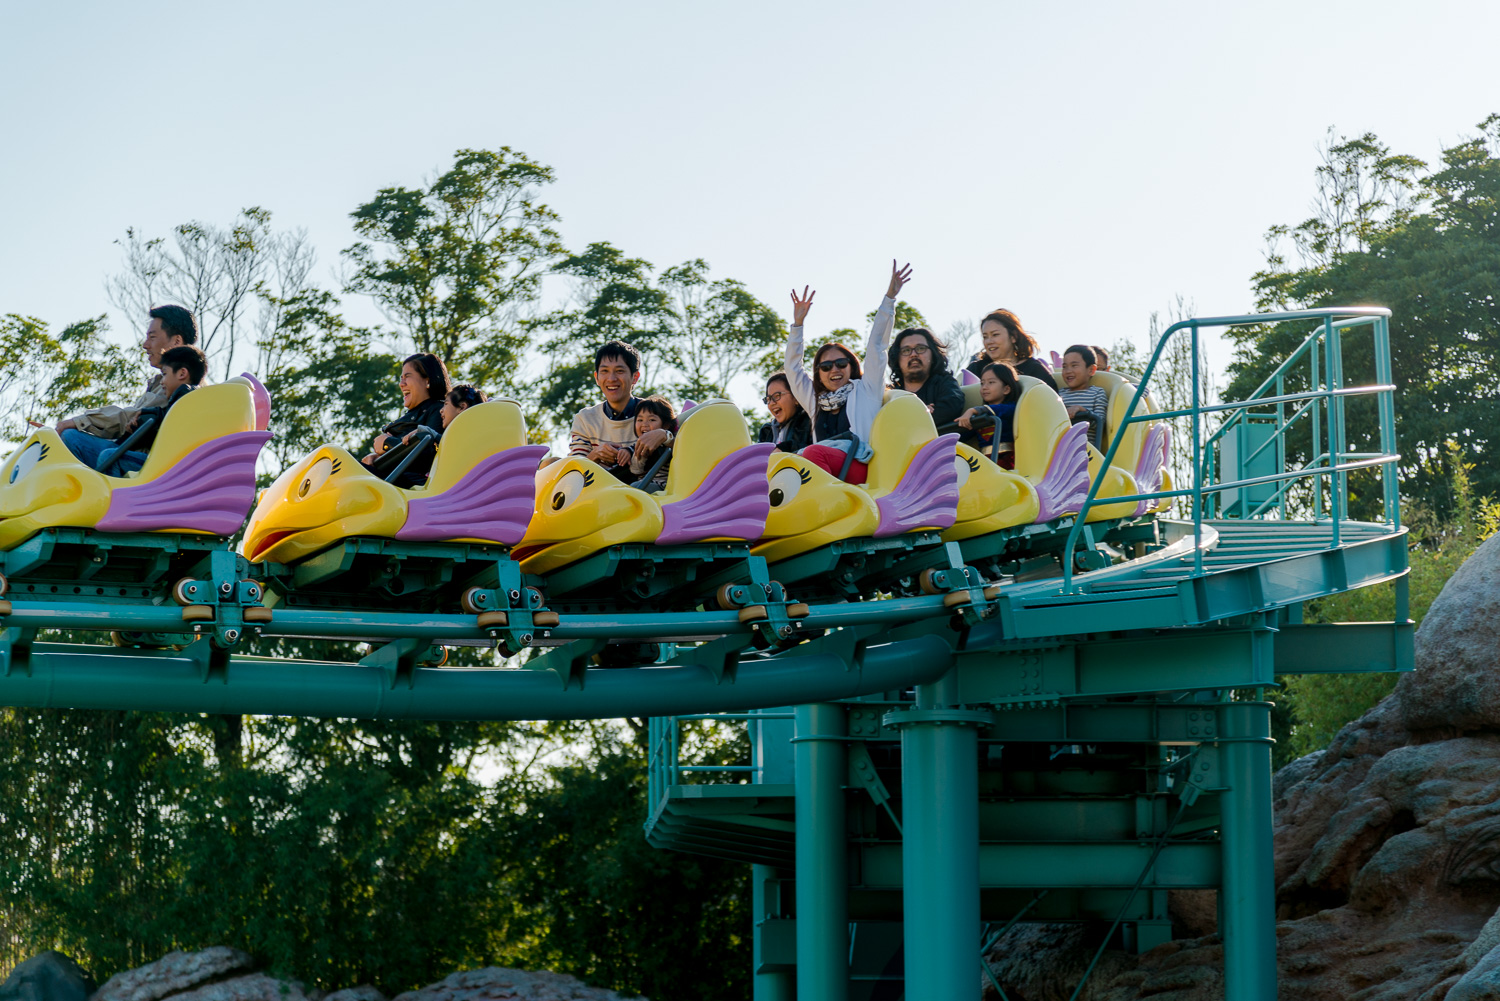 Guess who enjoyed the most at this mini-roller coaster?